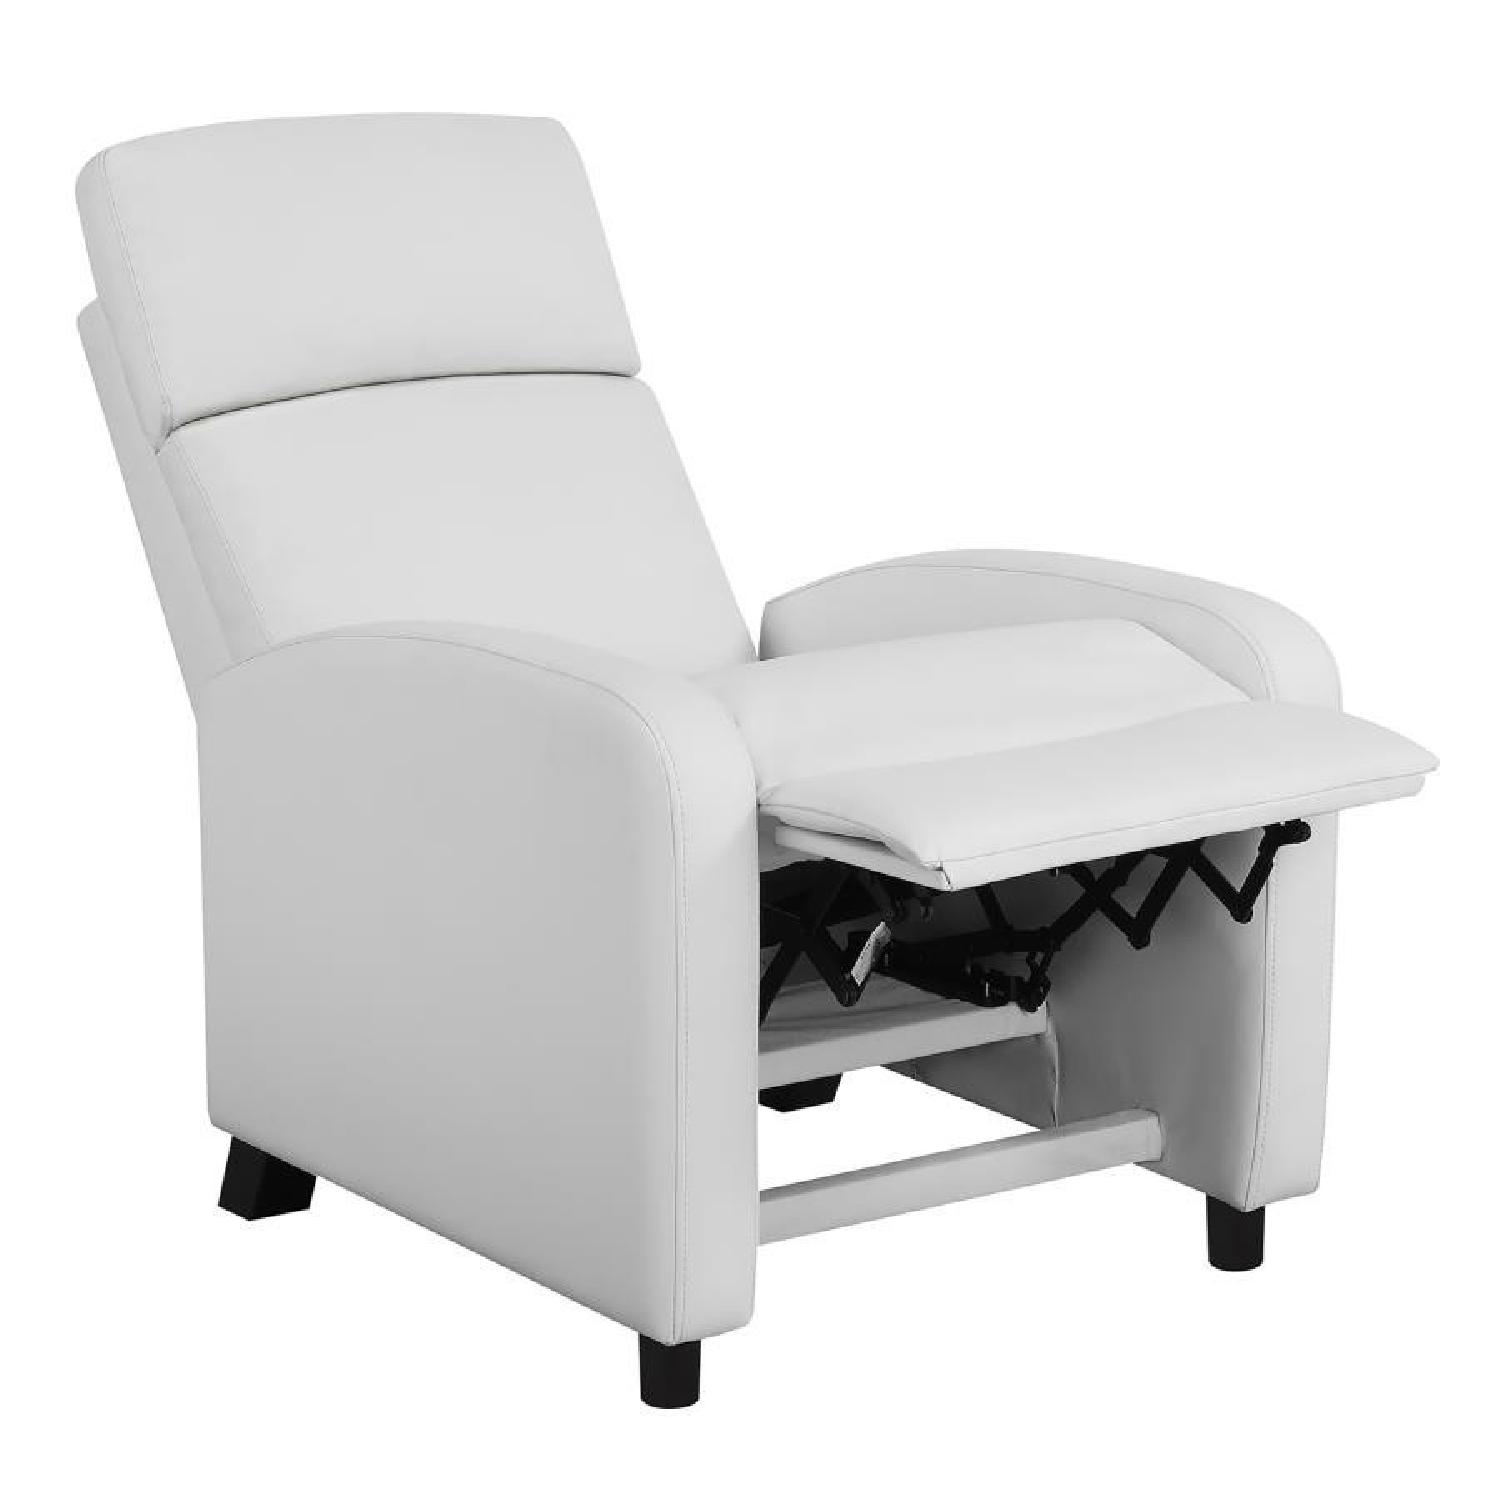 Compact Recliner Chair in White Leatherette-0